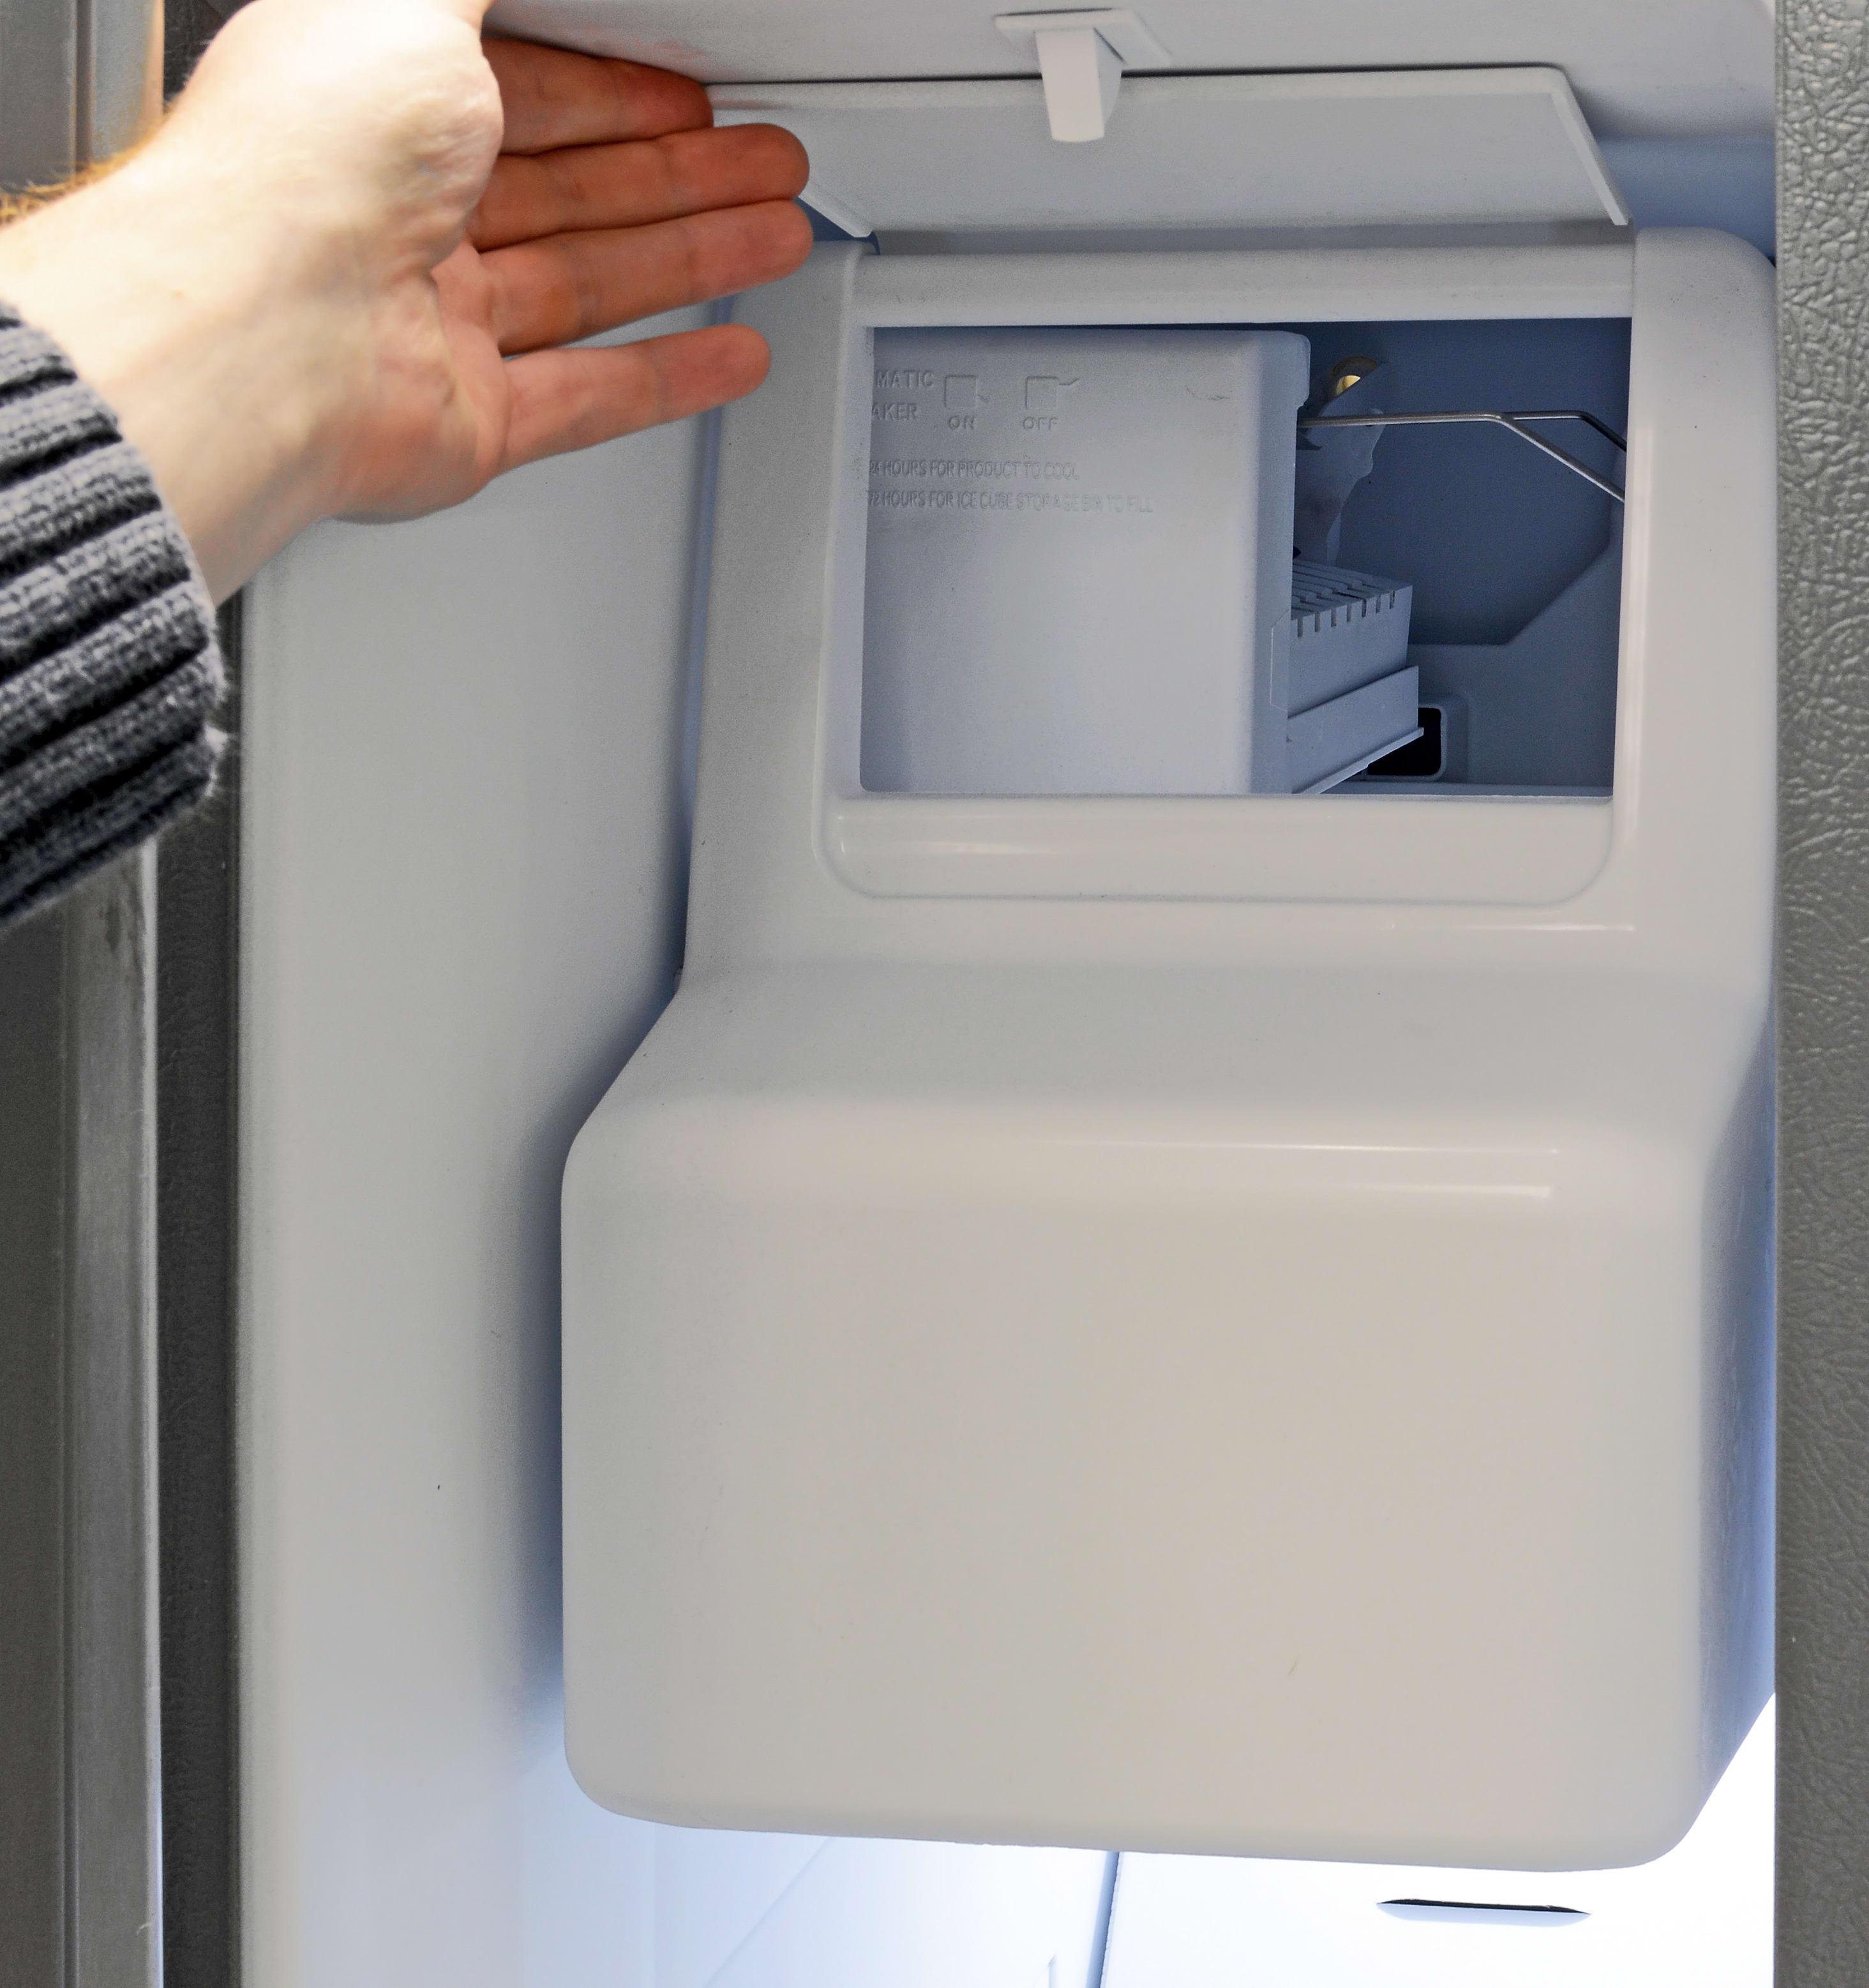 The Maytag MSF21D4MDM's large icemaker comes with a flap in front for easy access.